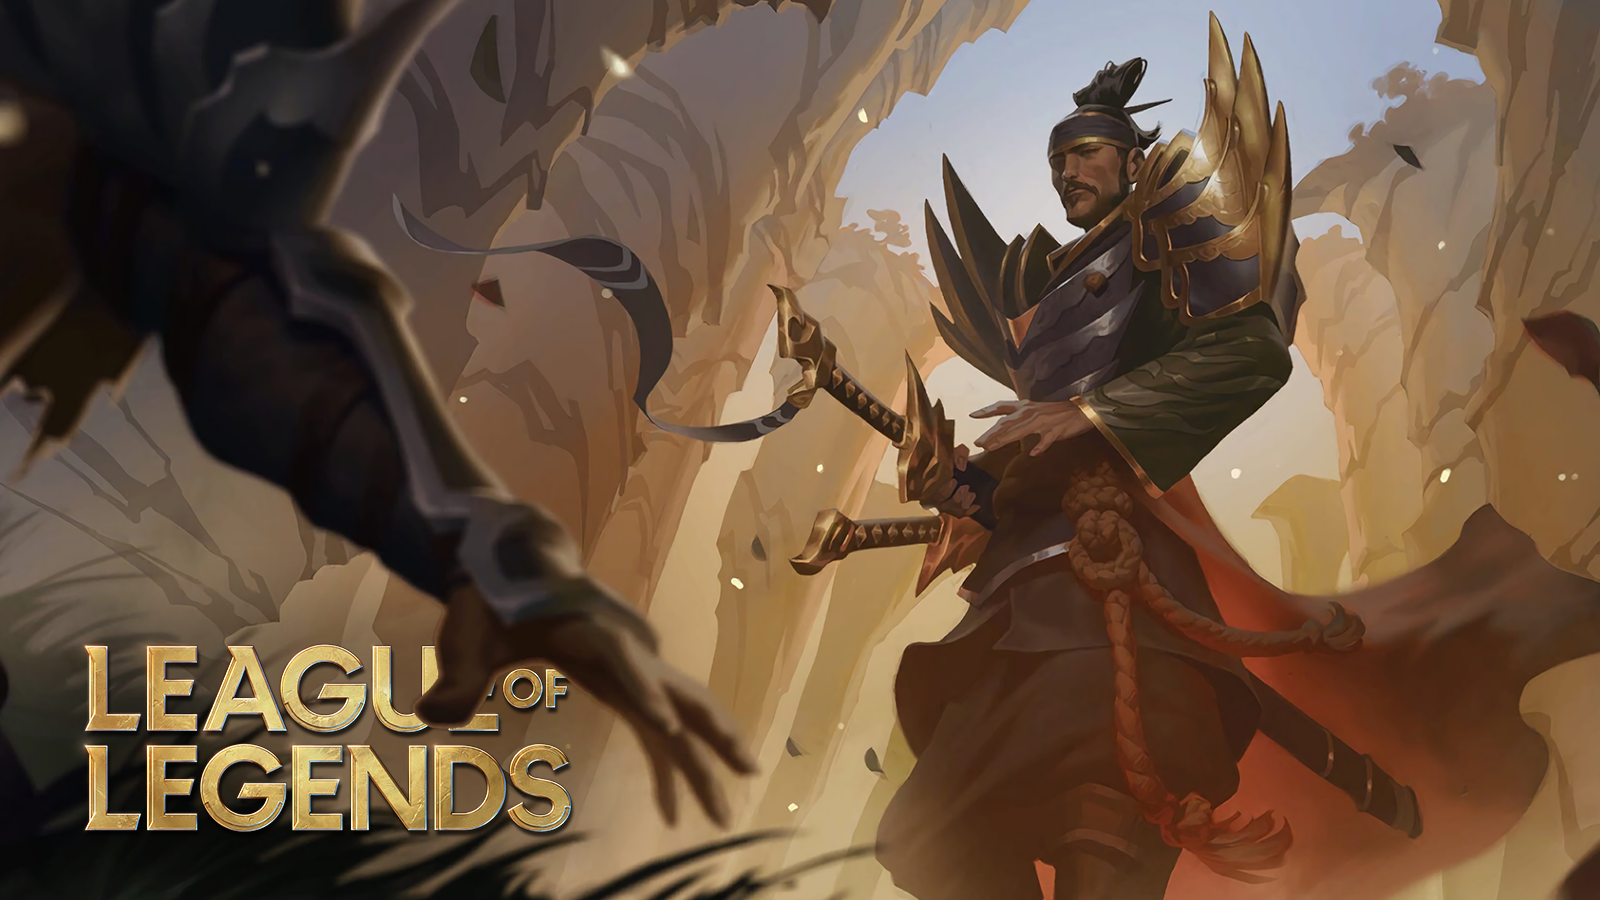 Yasuo's brother Yone is expected to be the 150th champion released in League of Legends.